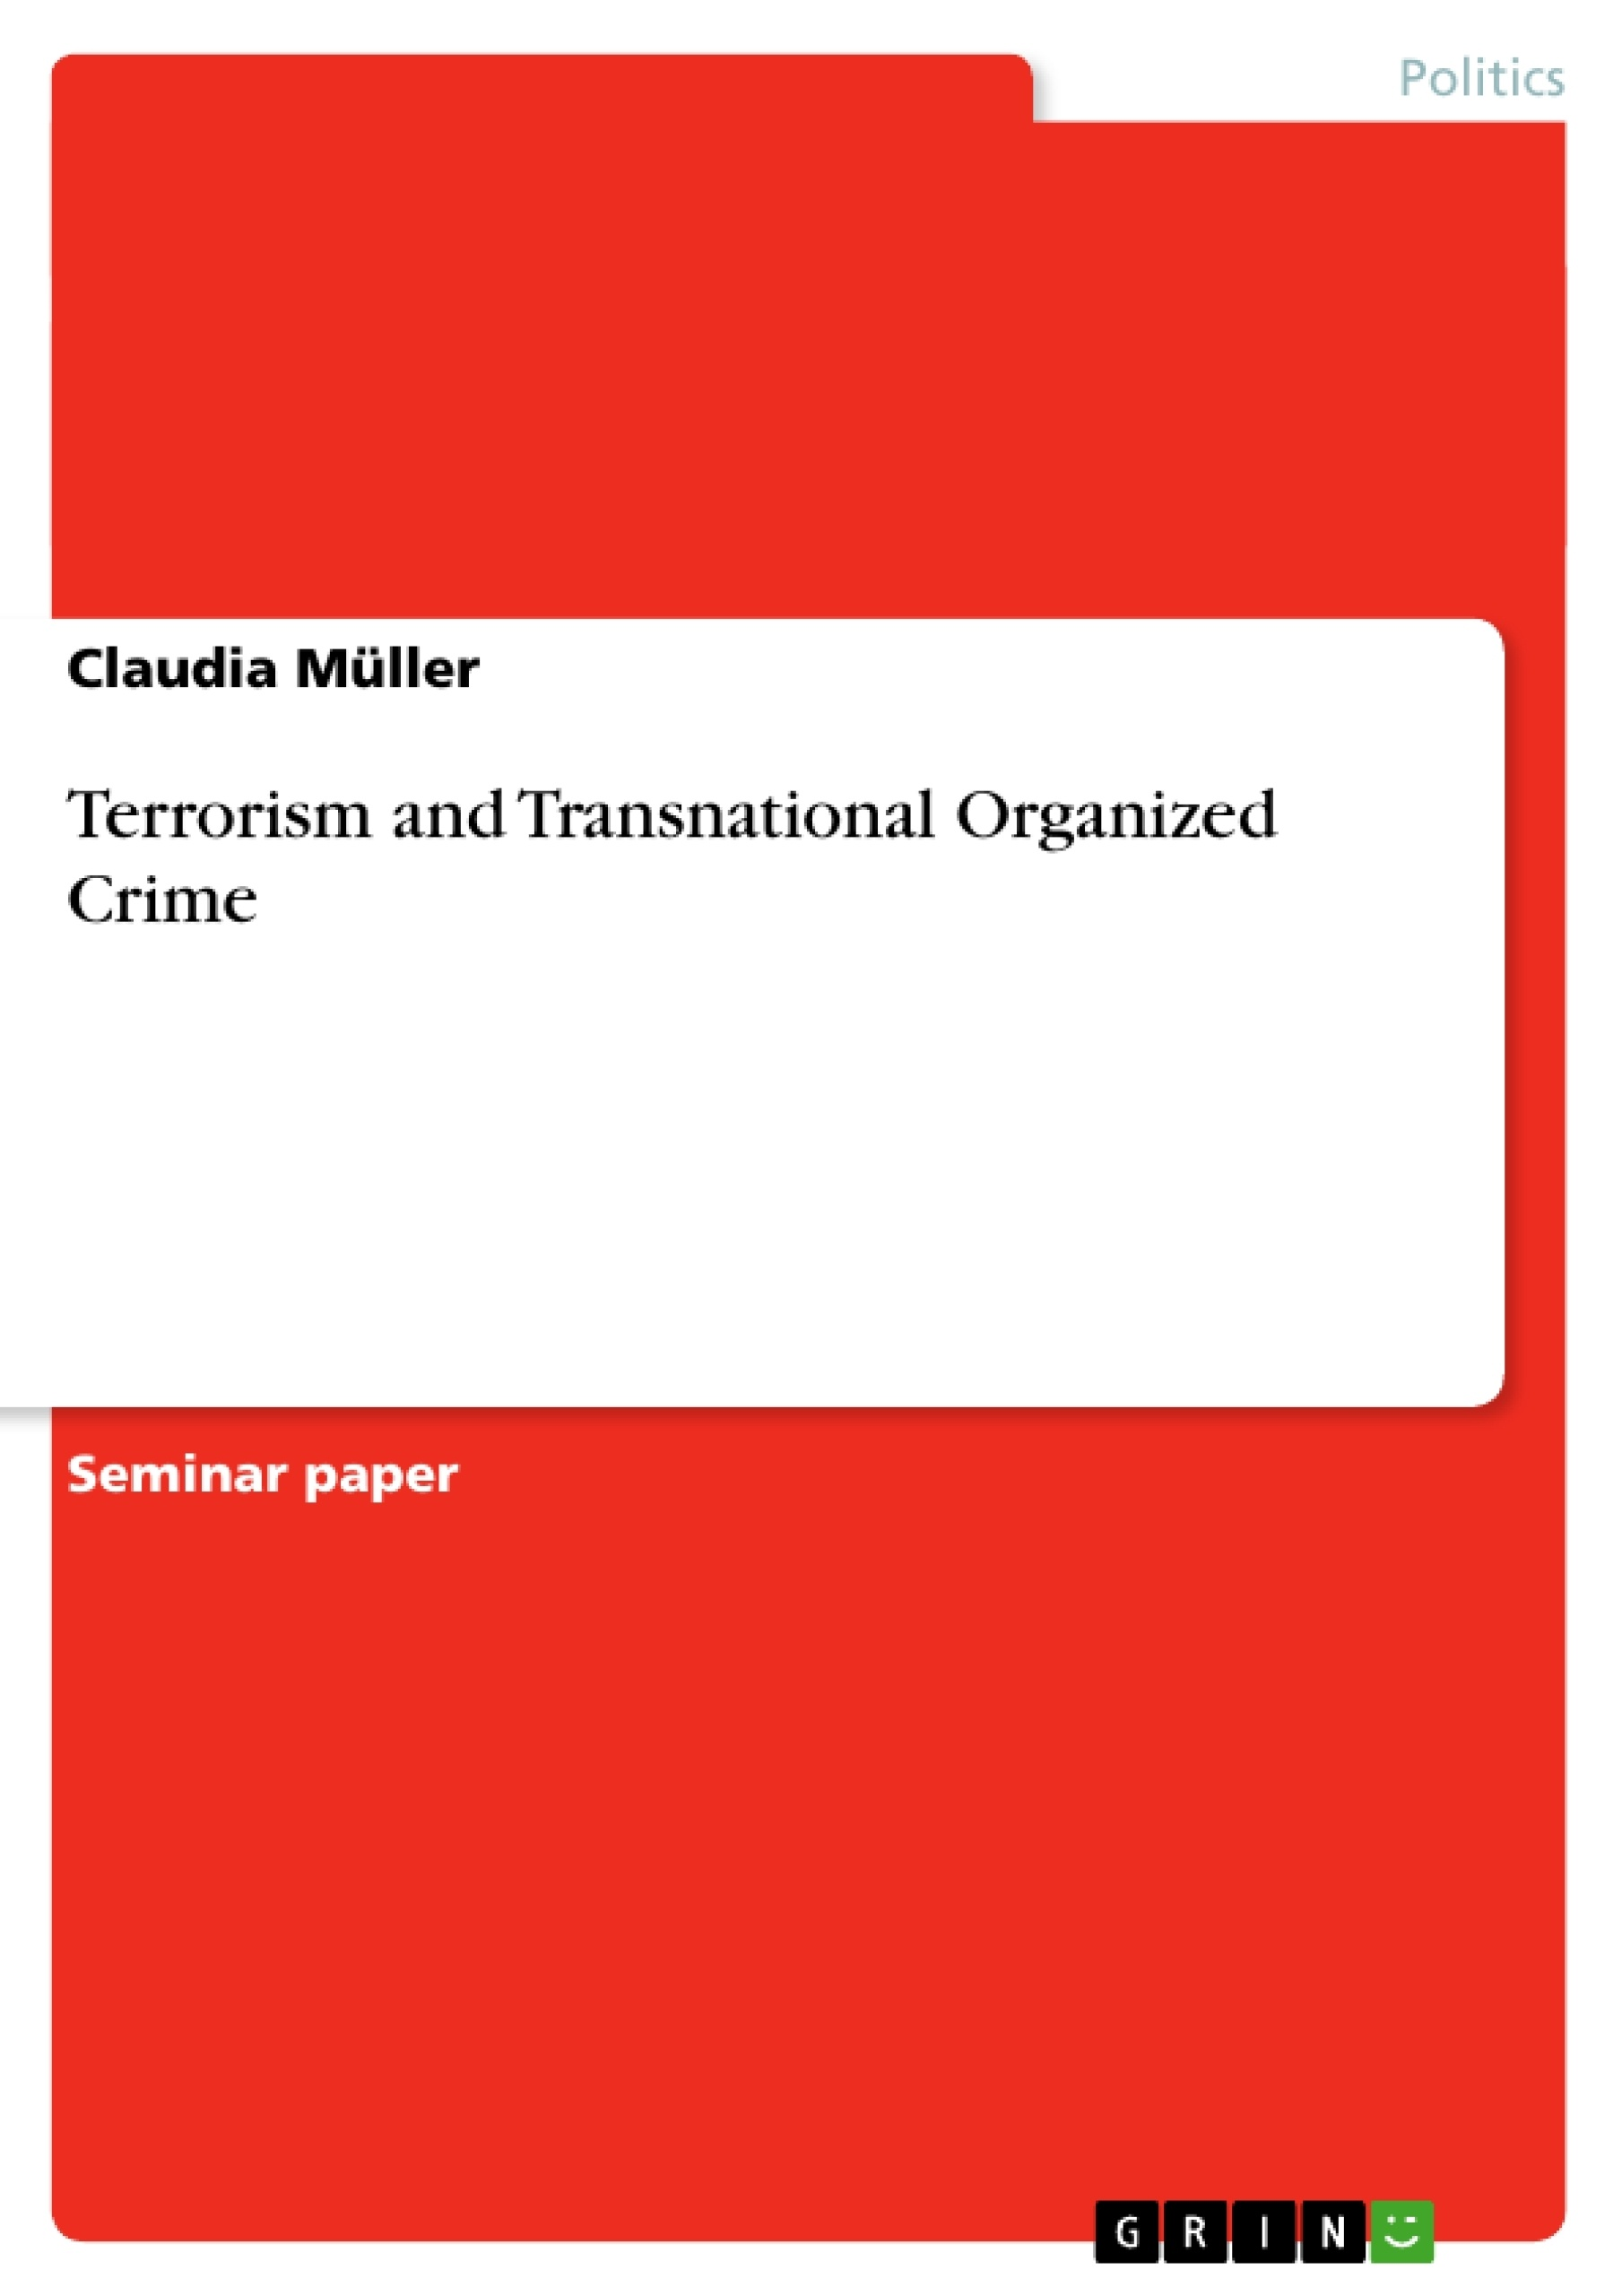 Title: Terrorism and Transnational Organized Crime